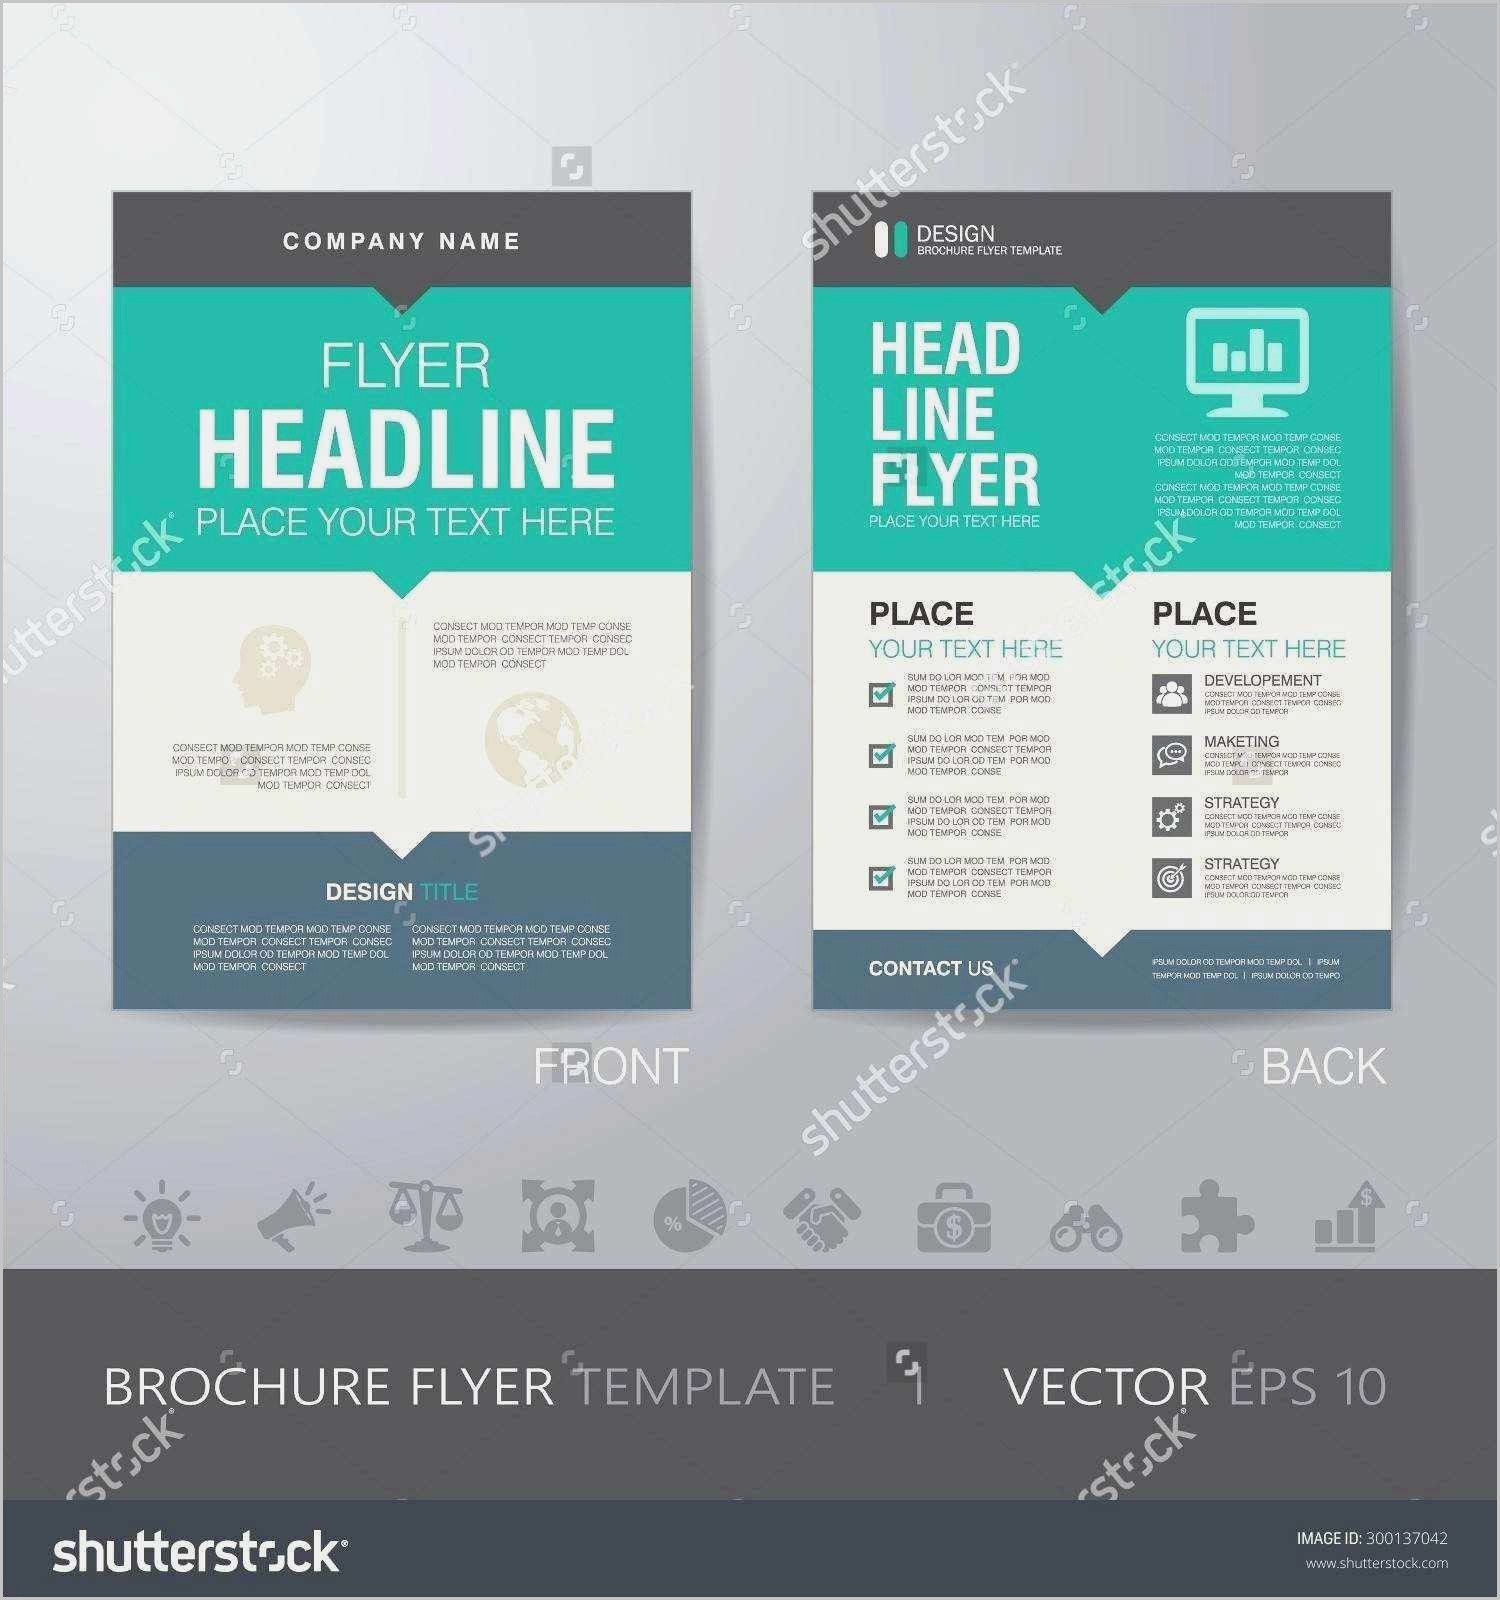 003 Astounding Microsoft Publisher Flyer Template High Resolution  Free Download Event Real EstateFull